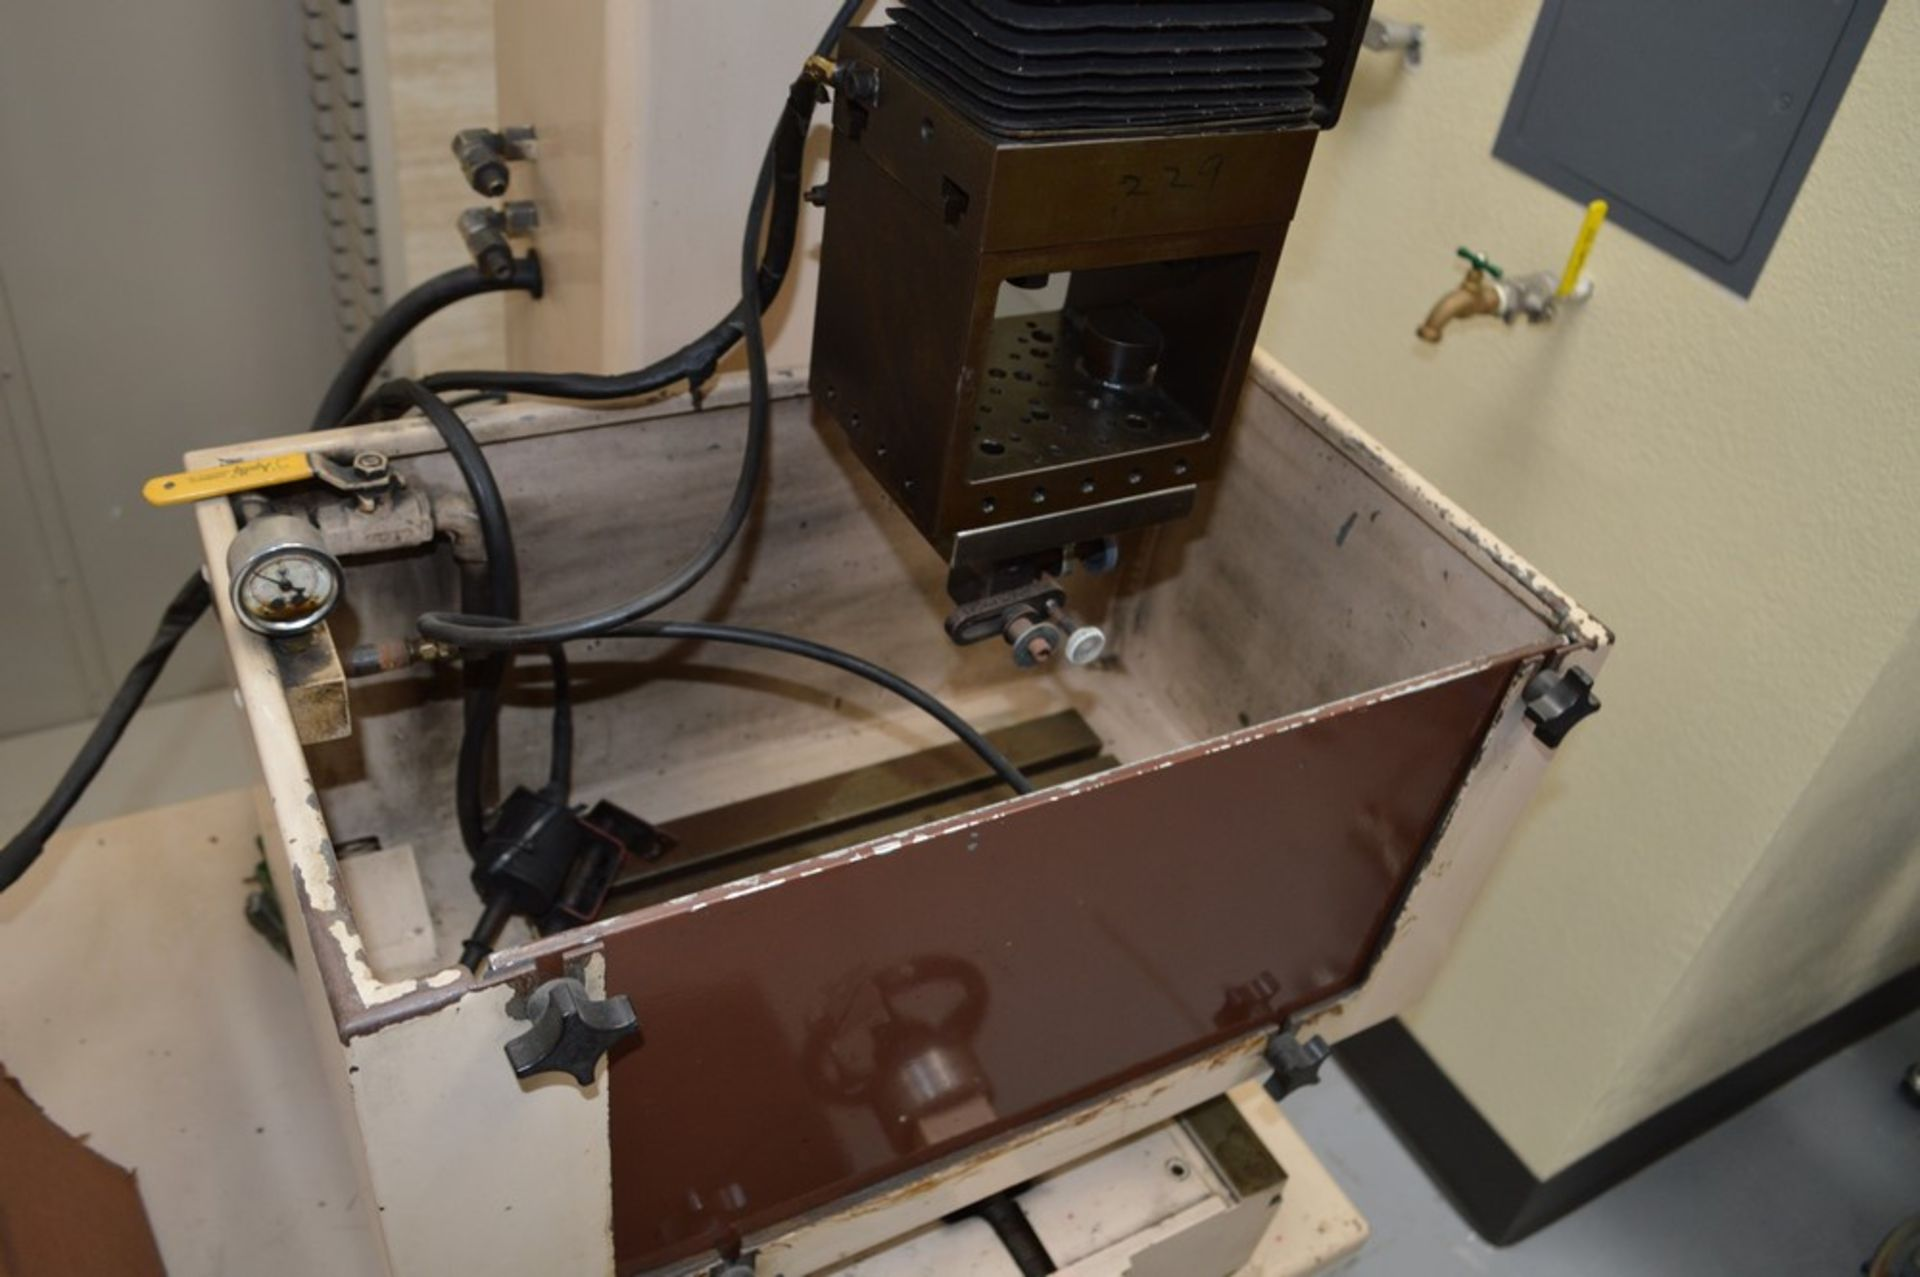 Elox small hole Plunge EDM Systems submersible EDM, Analam mini wizard DRO, benchtop model, 16 x 8 - Image 5 of 8